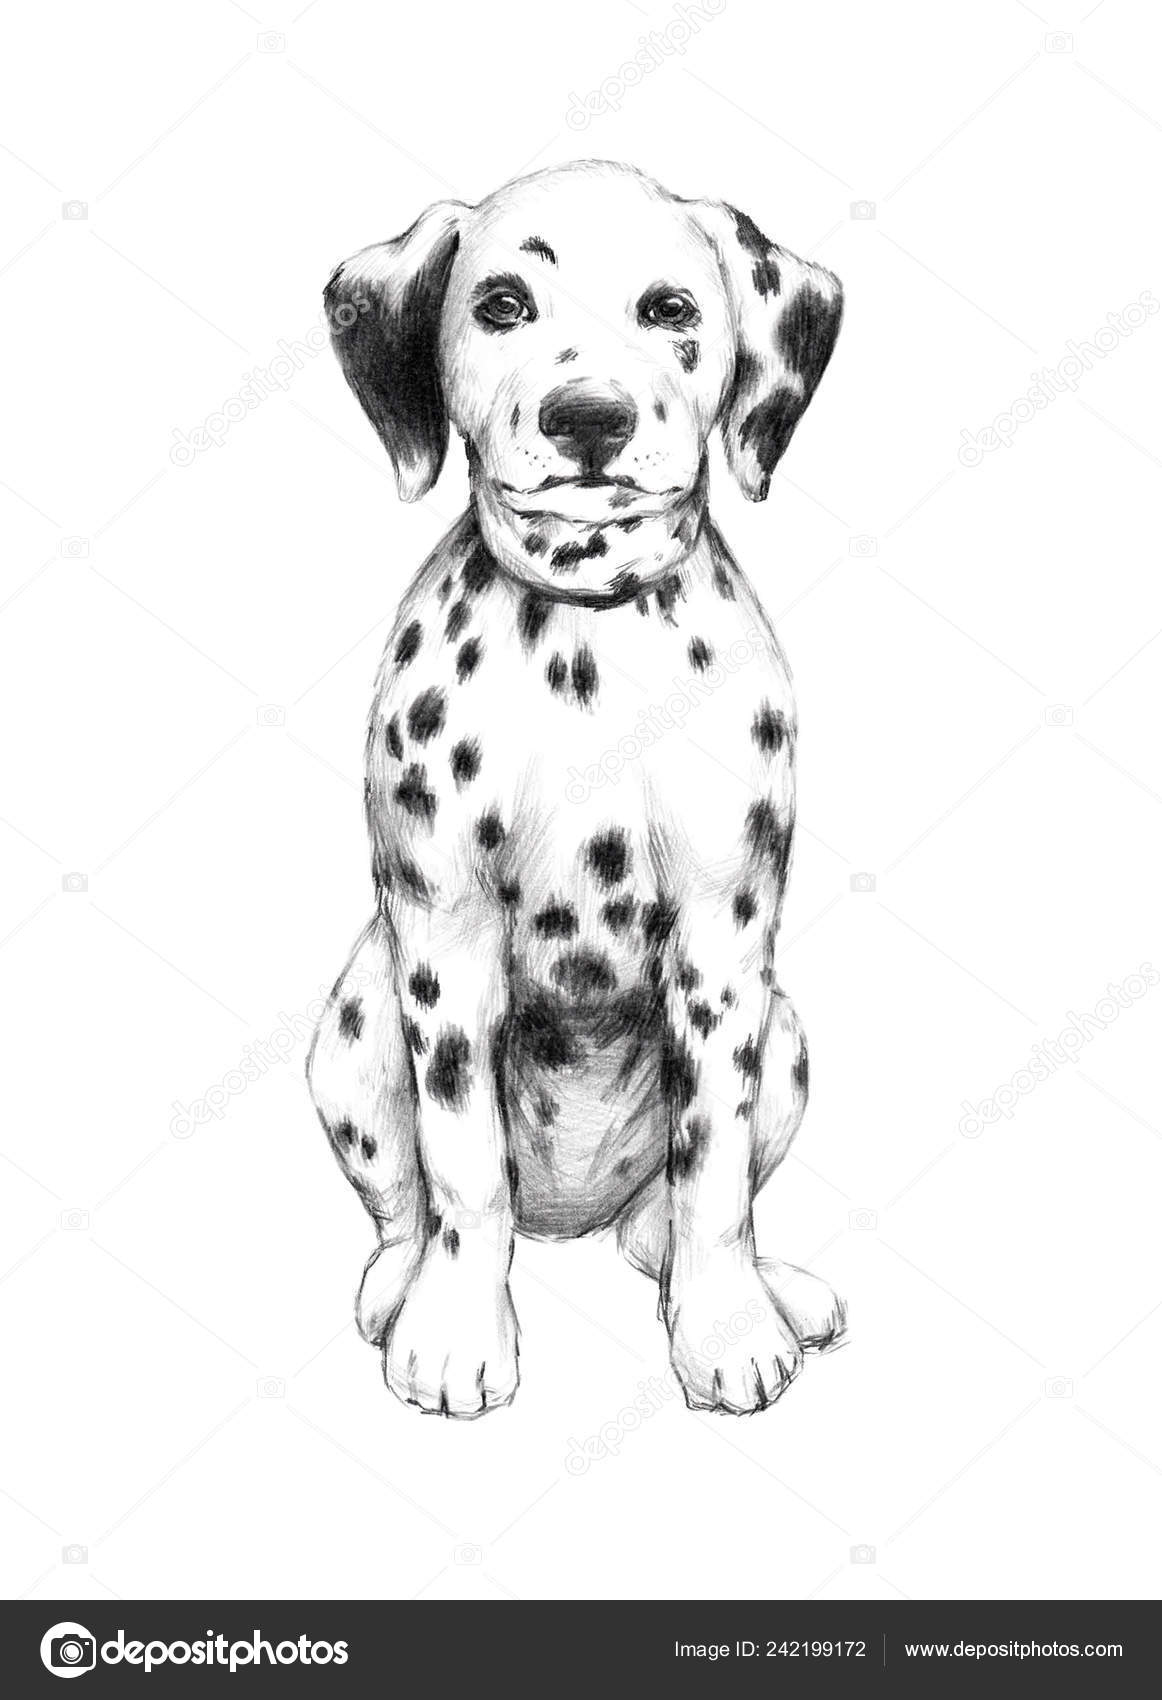 Drawings Puppy Dog Pencil Drawing Animal Sketch Pencil Drawing Dog Cute Little Puppy Illustration Pet Stock Photo C Chepurkoekaterina 242199172